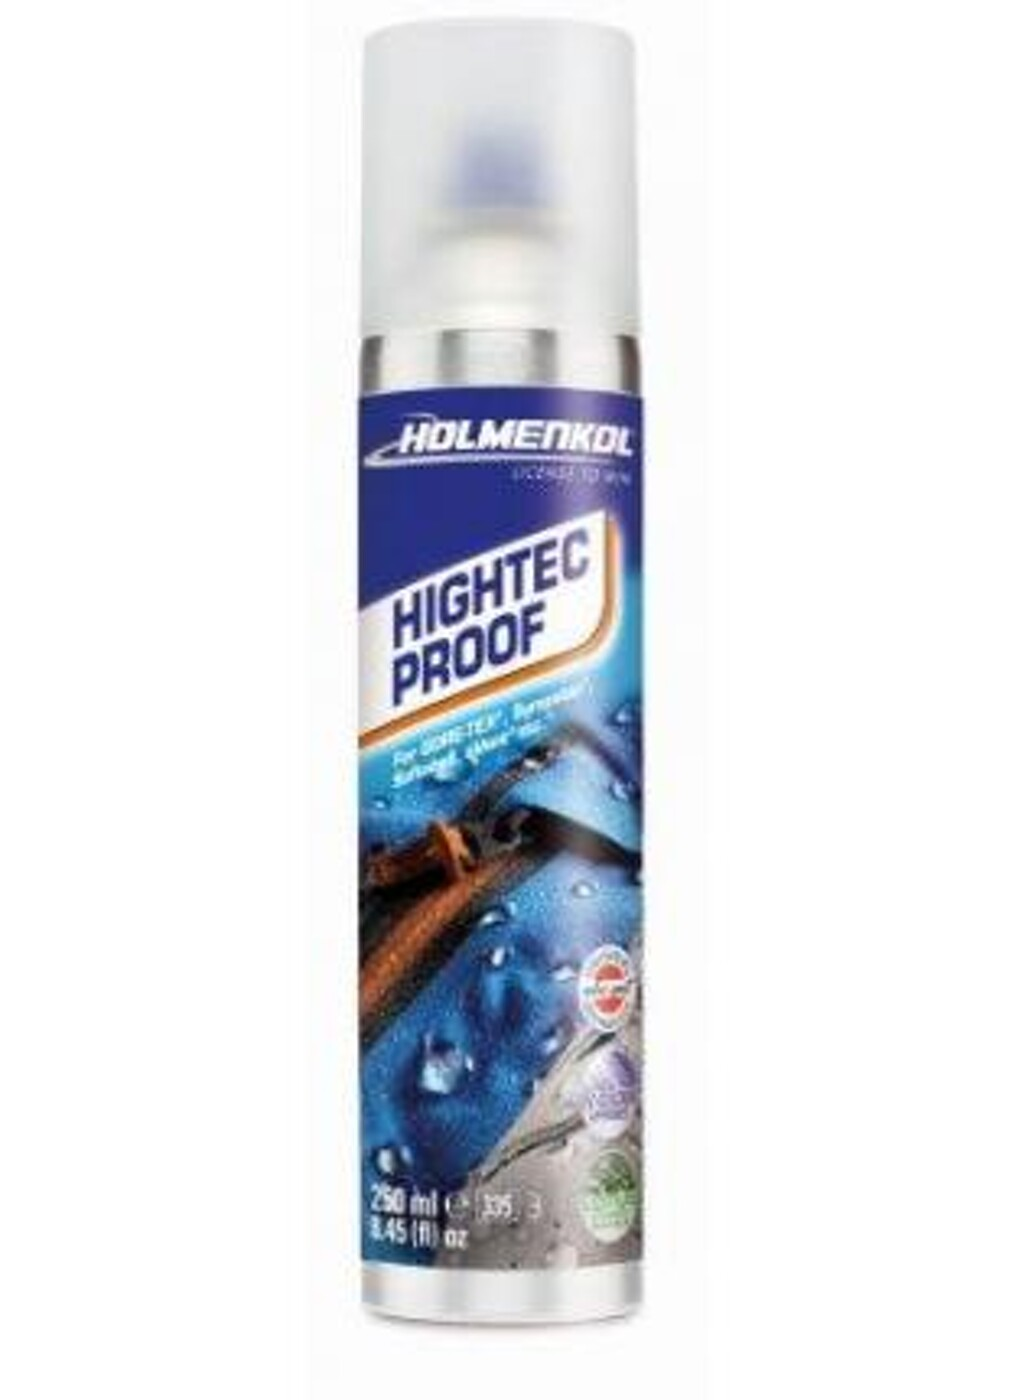 HOLMENKOL Hightec Proof 250ml